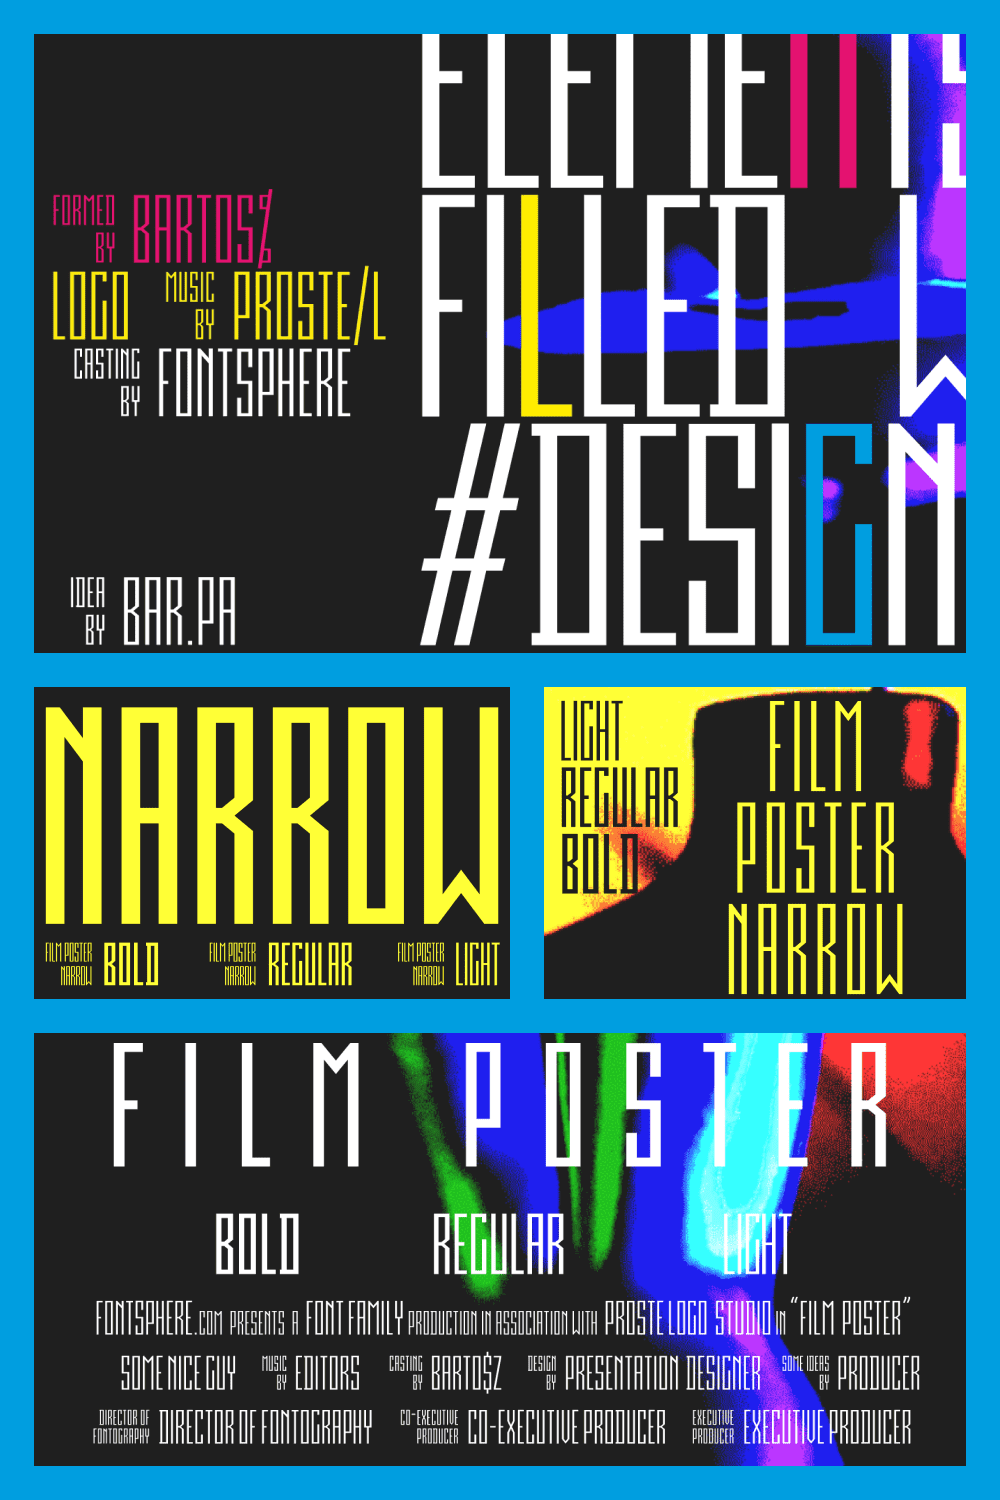 A great and easy to read font for posters.